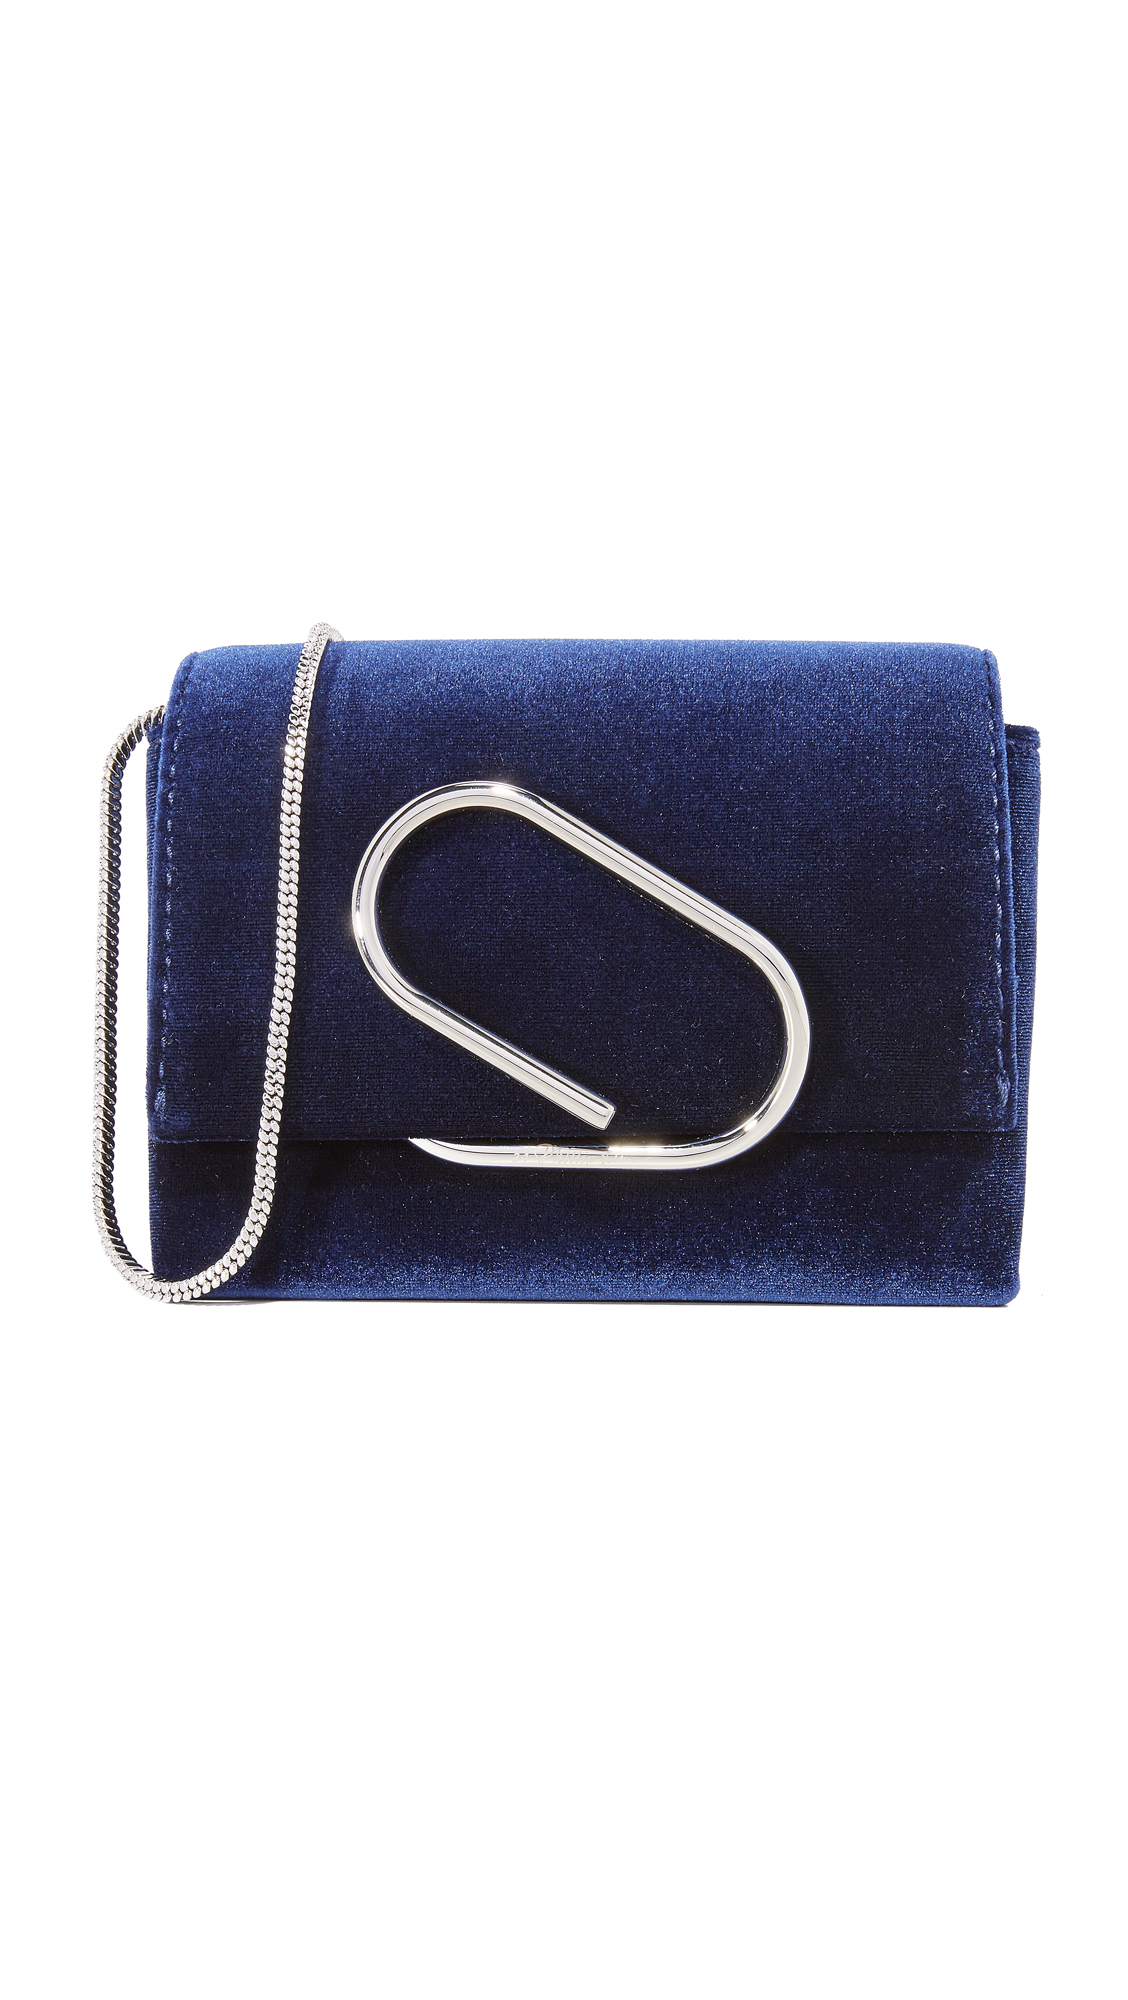 3.1 Phillip Lim Alix Micro Cross Body Bag - Royal Blue